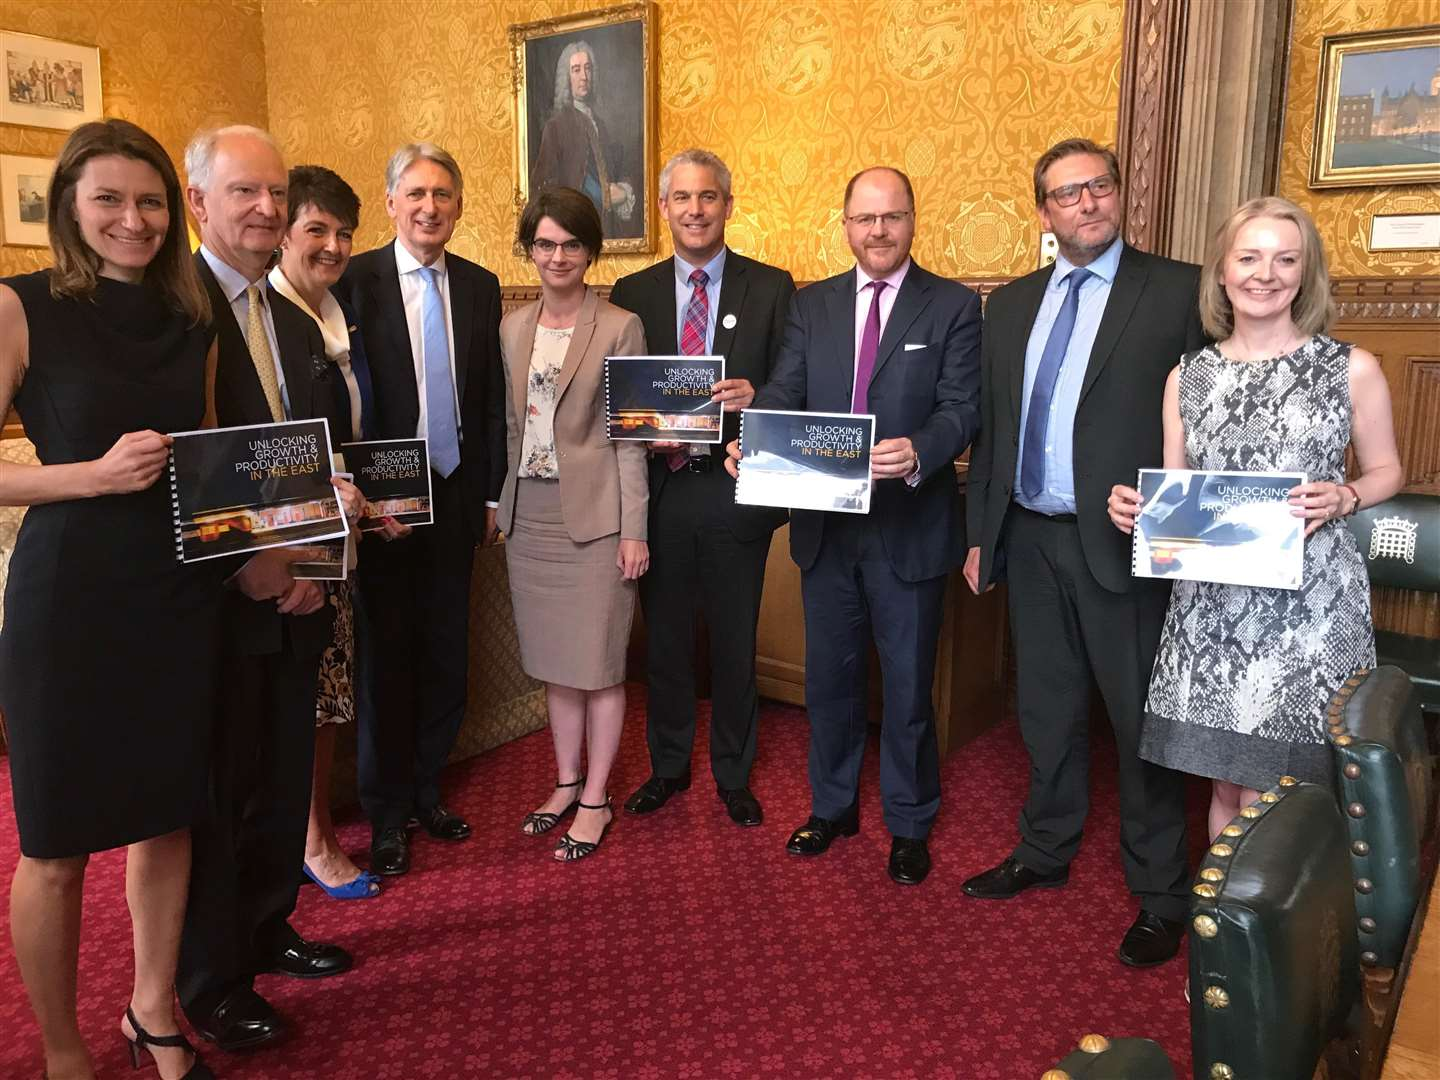 From left: Lucy Frazer MP, Sir Henry Bellingham MP, Jo Churchill MP, Chancellor Philip Hammond, Chloe Smith MP, Steve Barclay MP, George Freeman MP, Mayor James Palmer and Elizabeth Truss MP.(4217021)